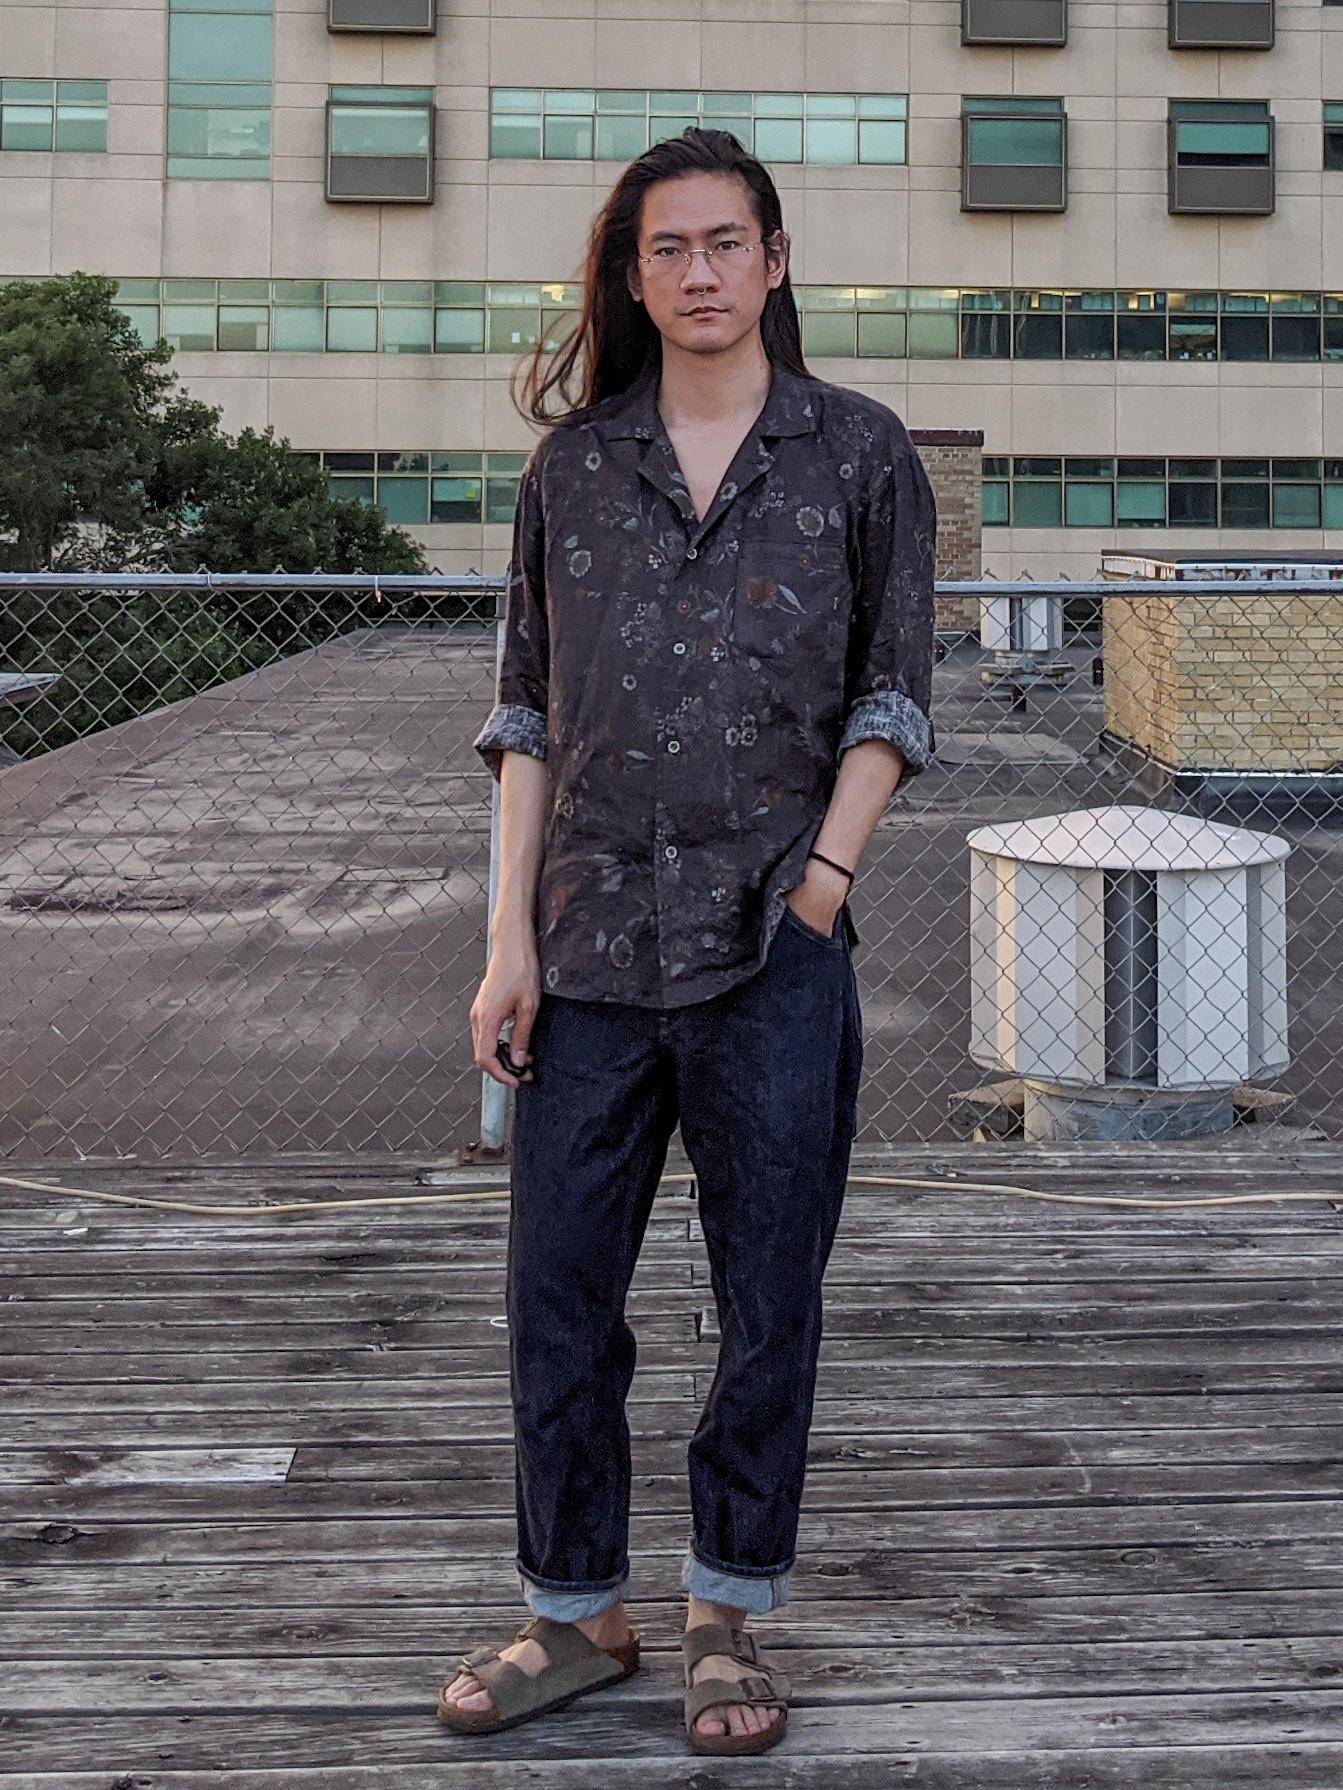 @_Donnyq wears a print shirt and dark jeans, and is photographed on a rooftop.